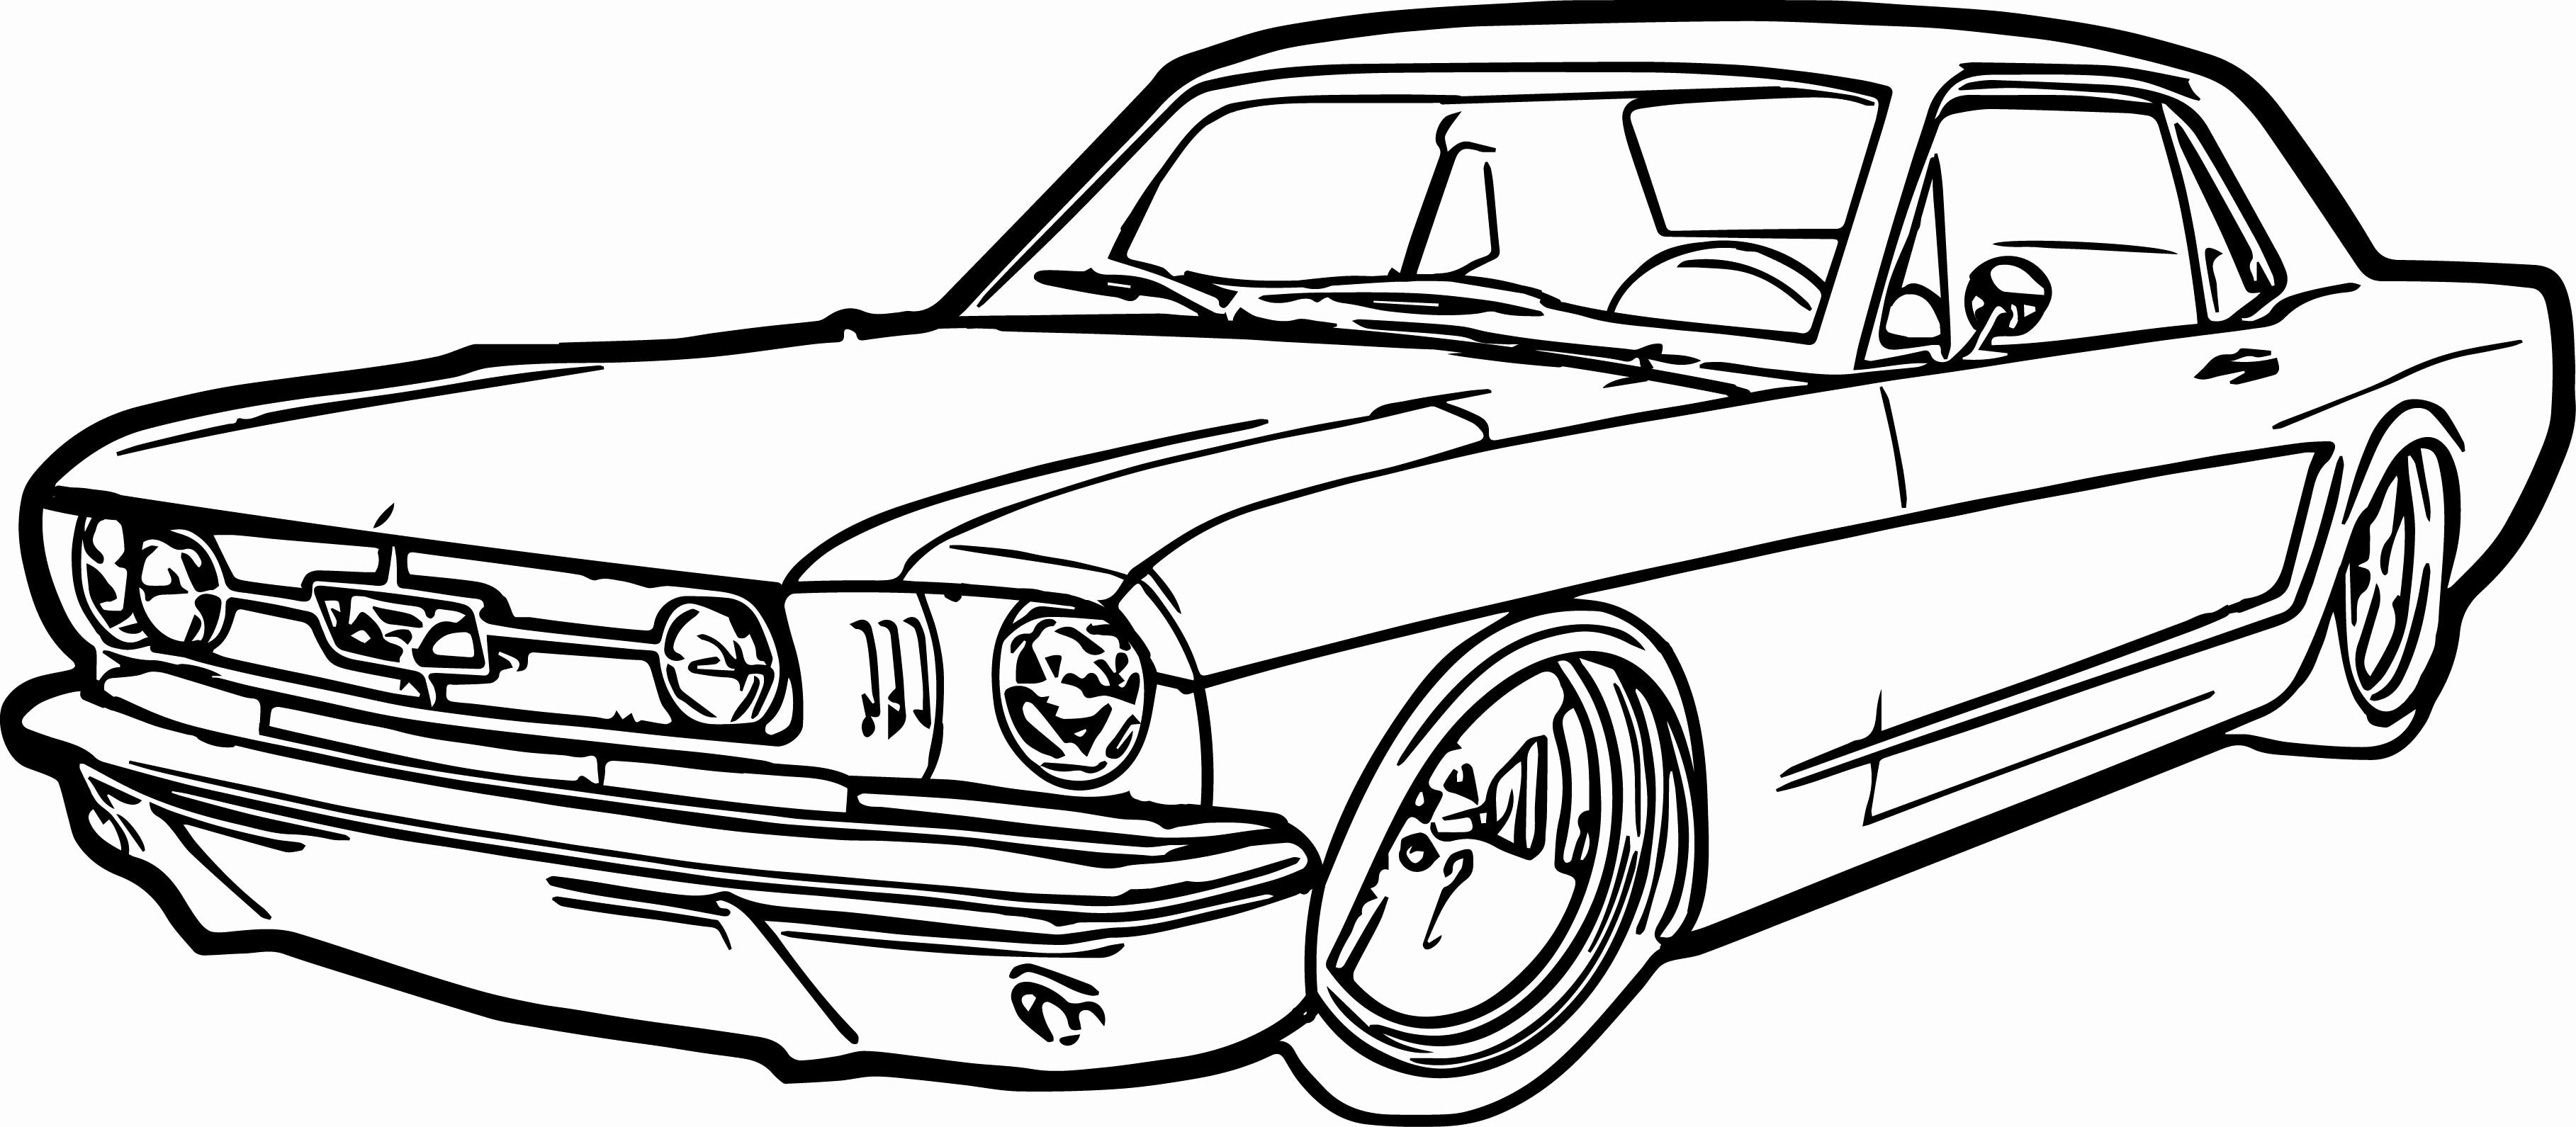 3635x1591 Ford Coloring Pages With Wallpapers Free Download Ford